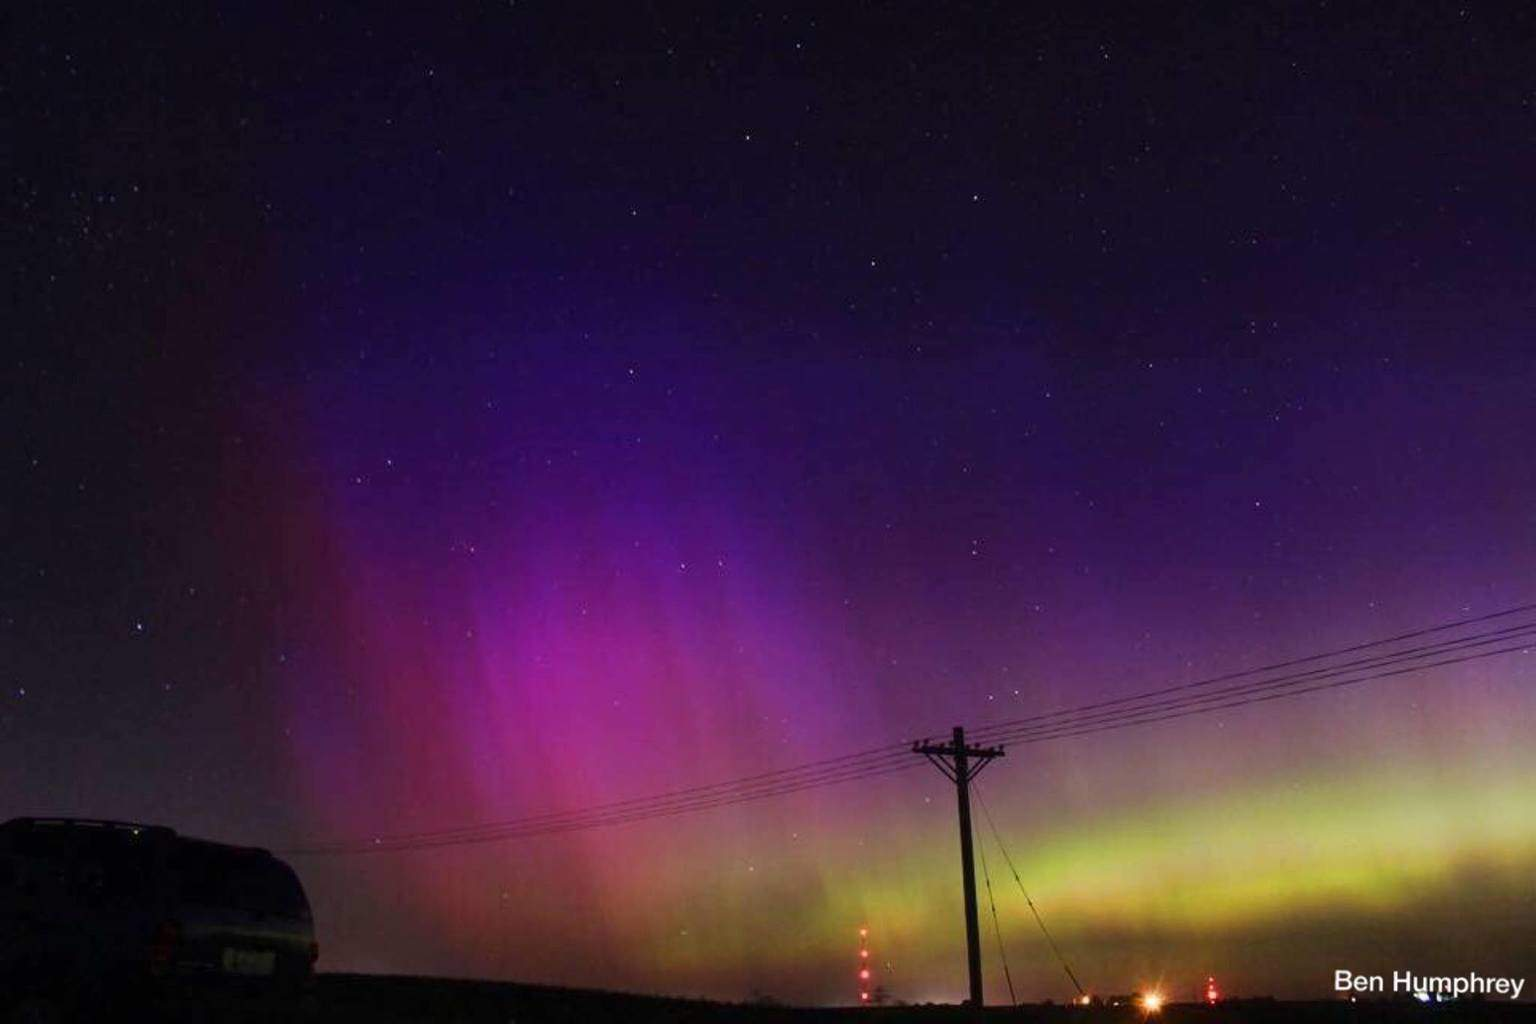 One of the first pictures I ever took of the northern lights in Central Iowa on 6/23/15